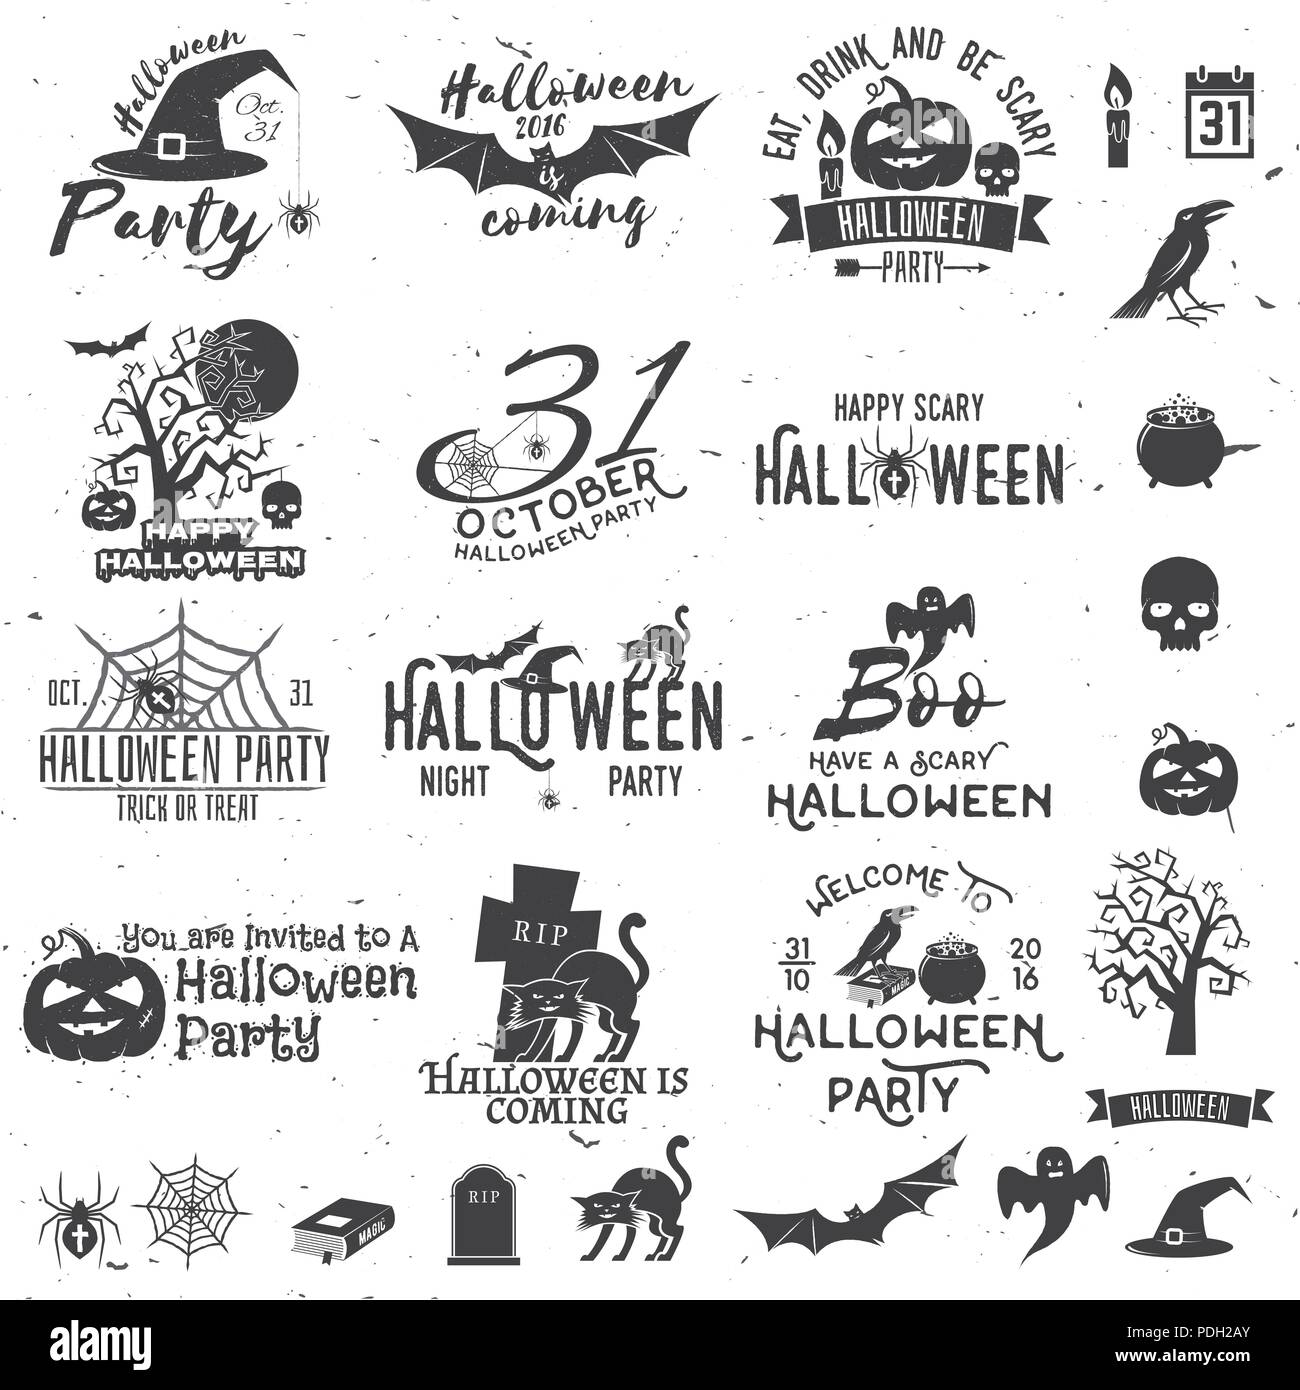 Set Of Halloween Party Concept And Design Elements Halloween Party